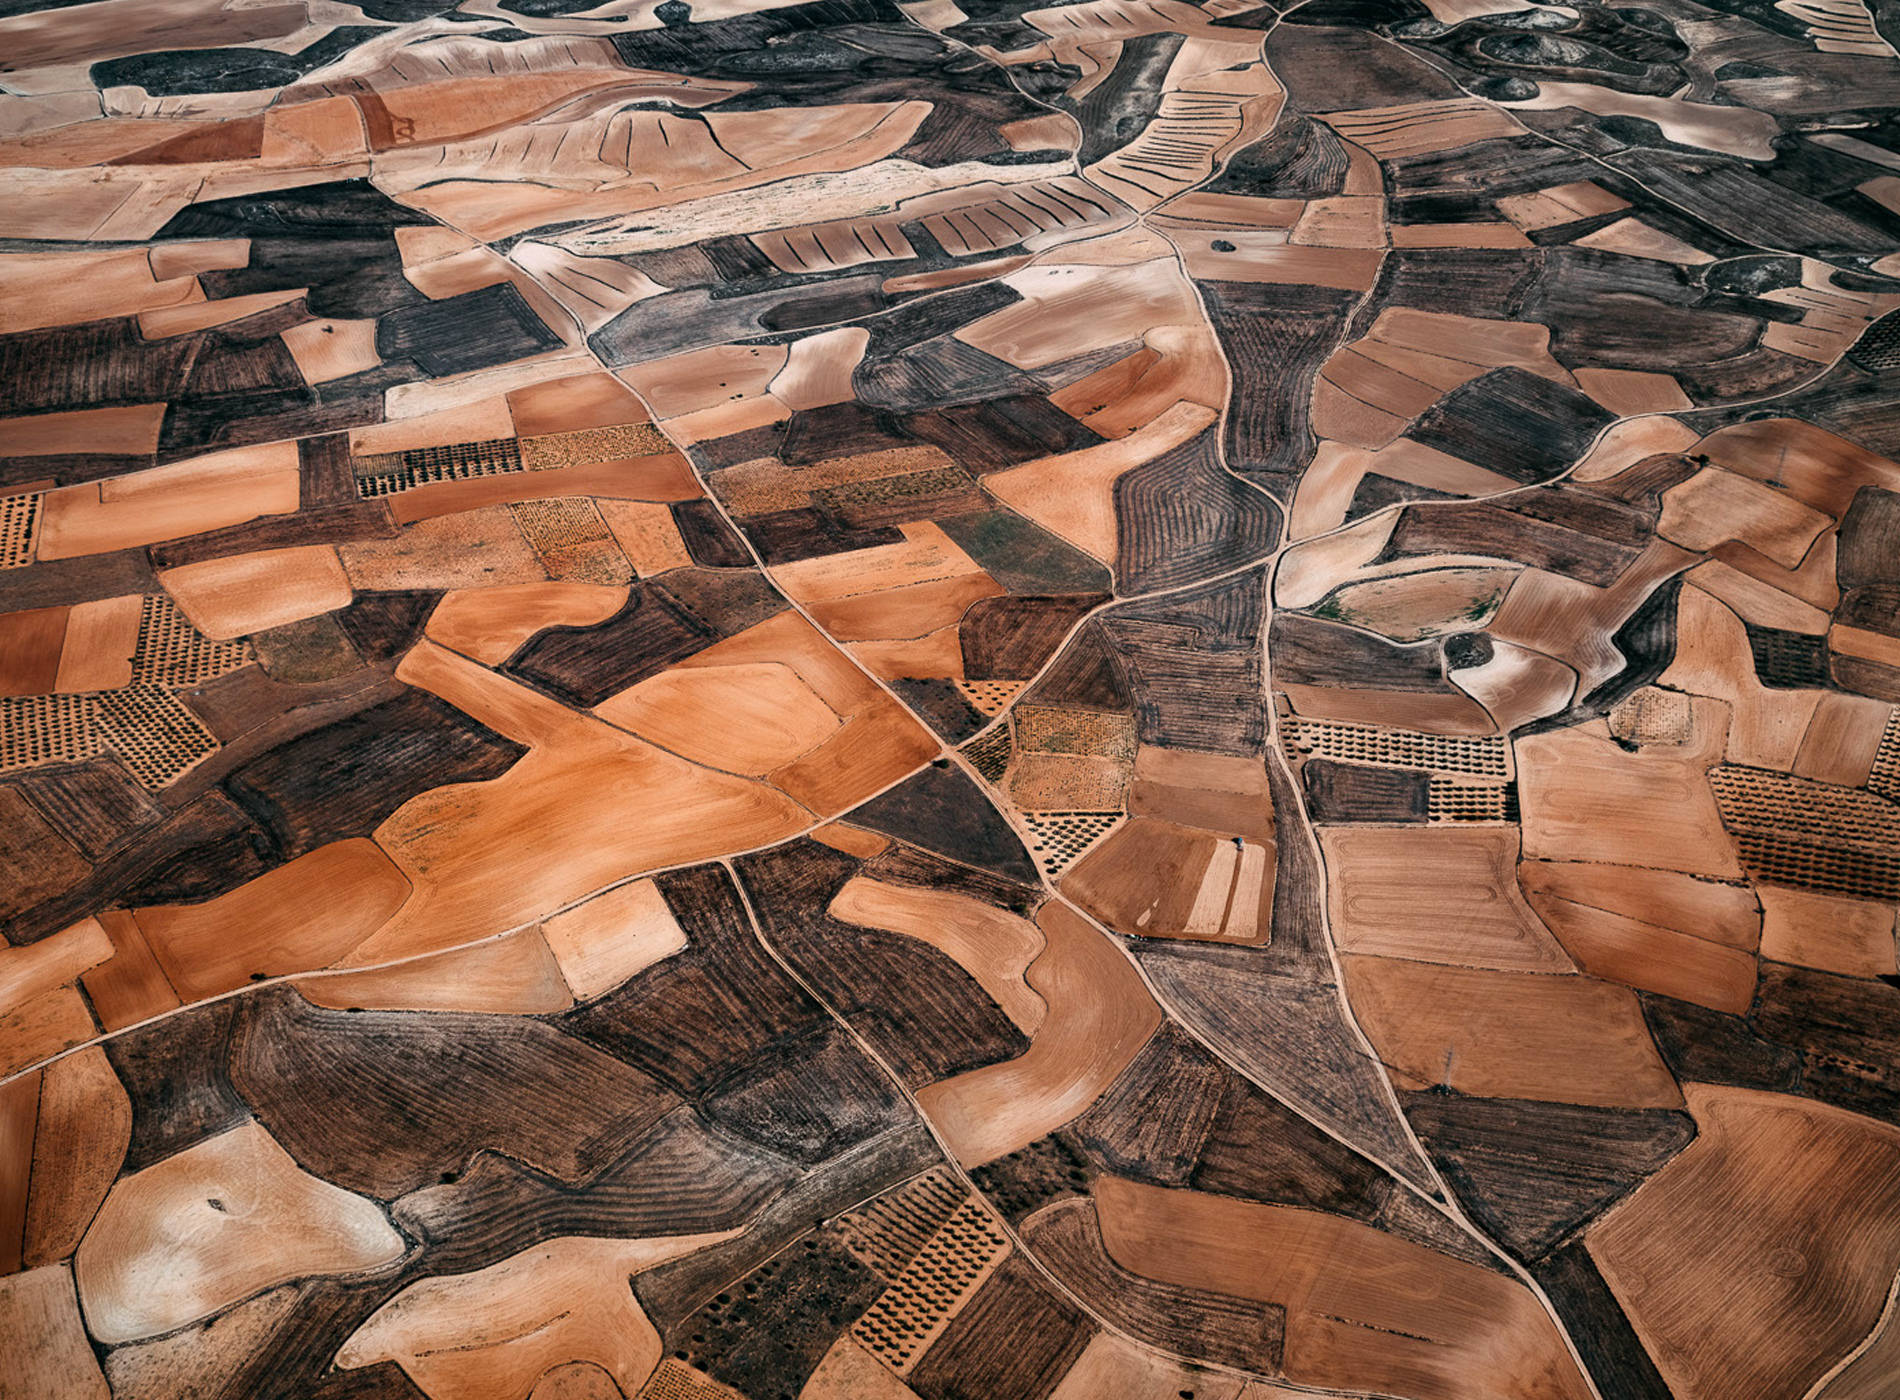 Tom Hegen Photographie The Spanish Farmland Series